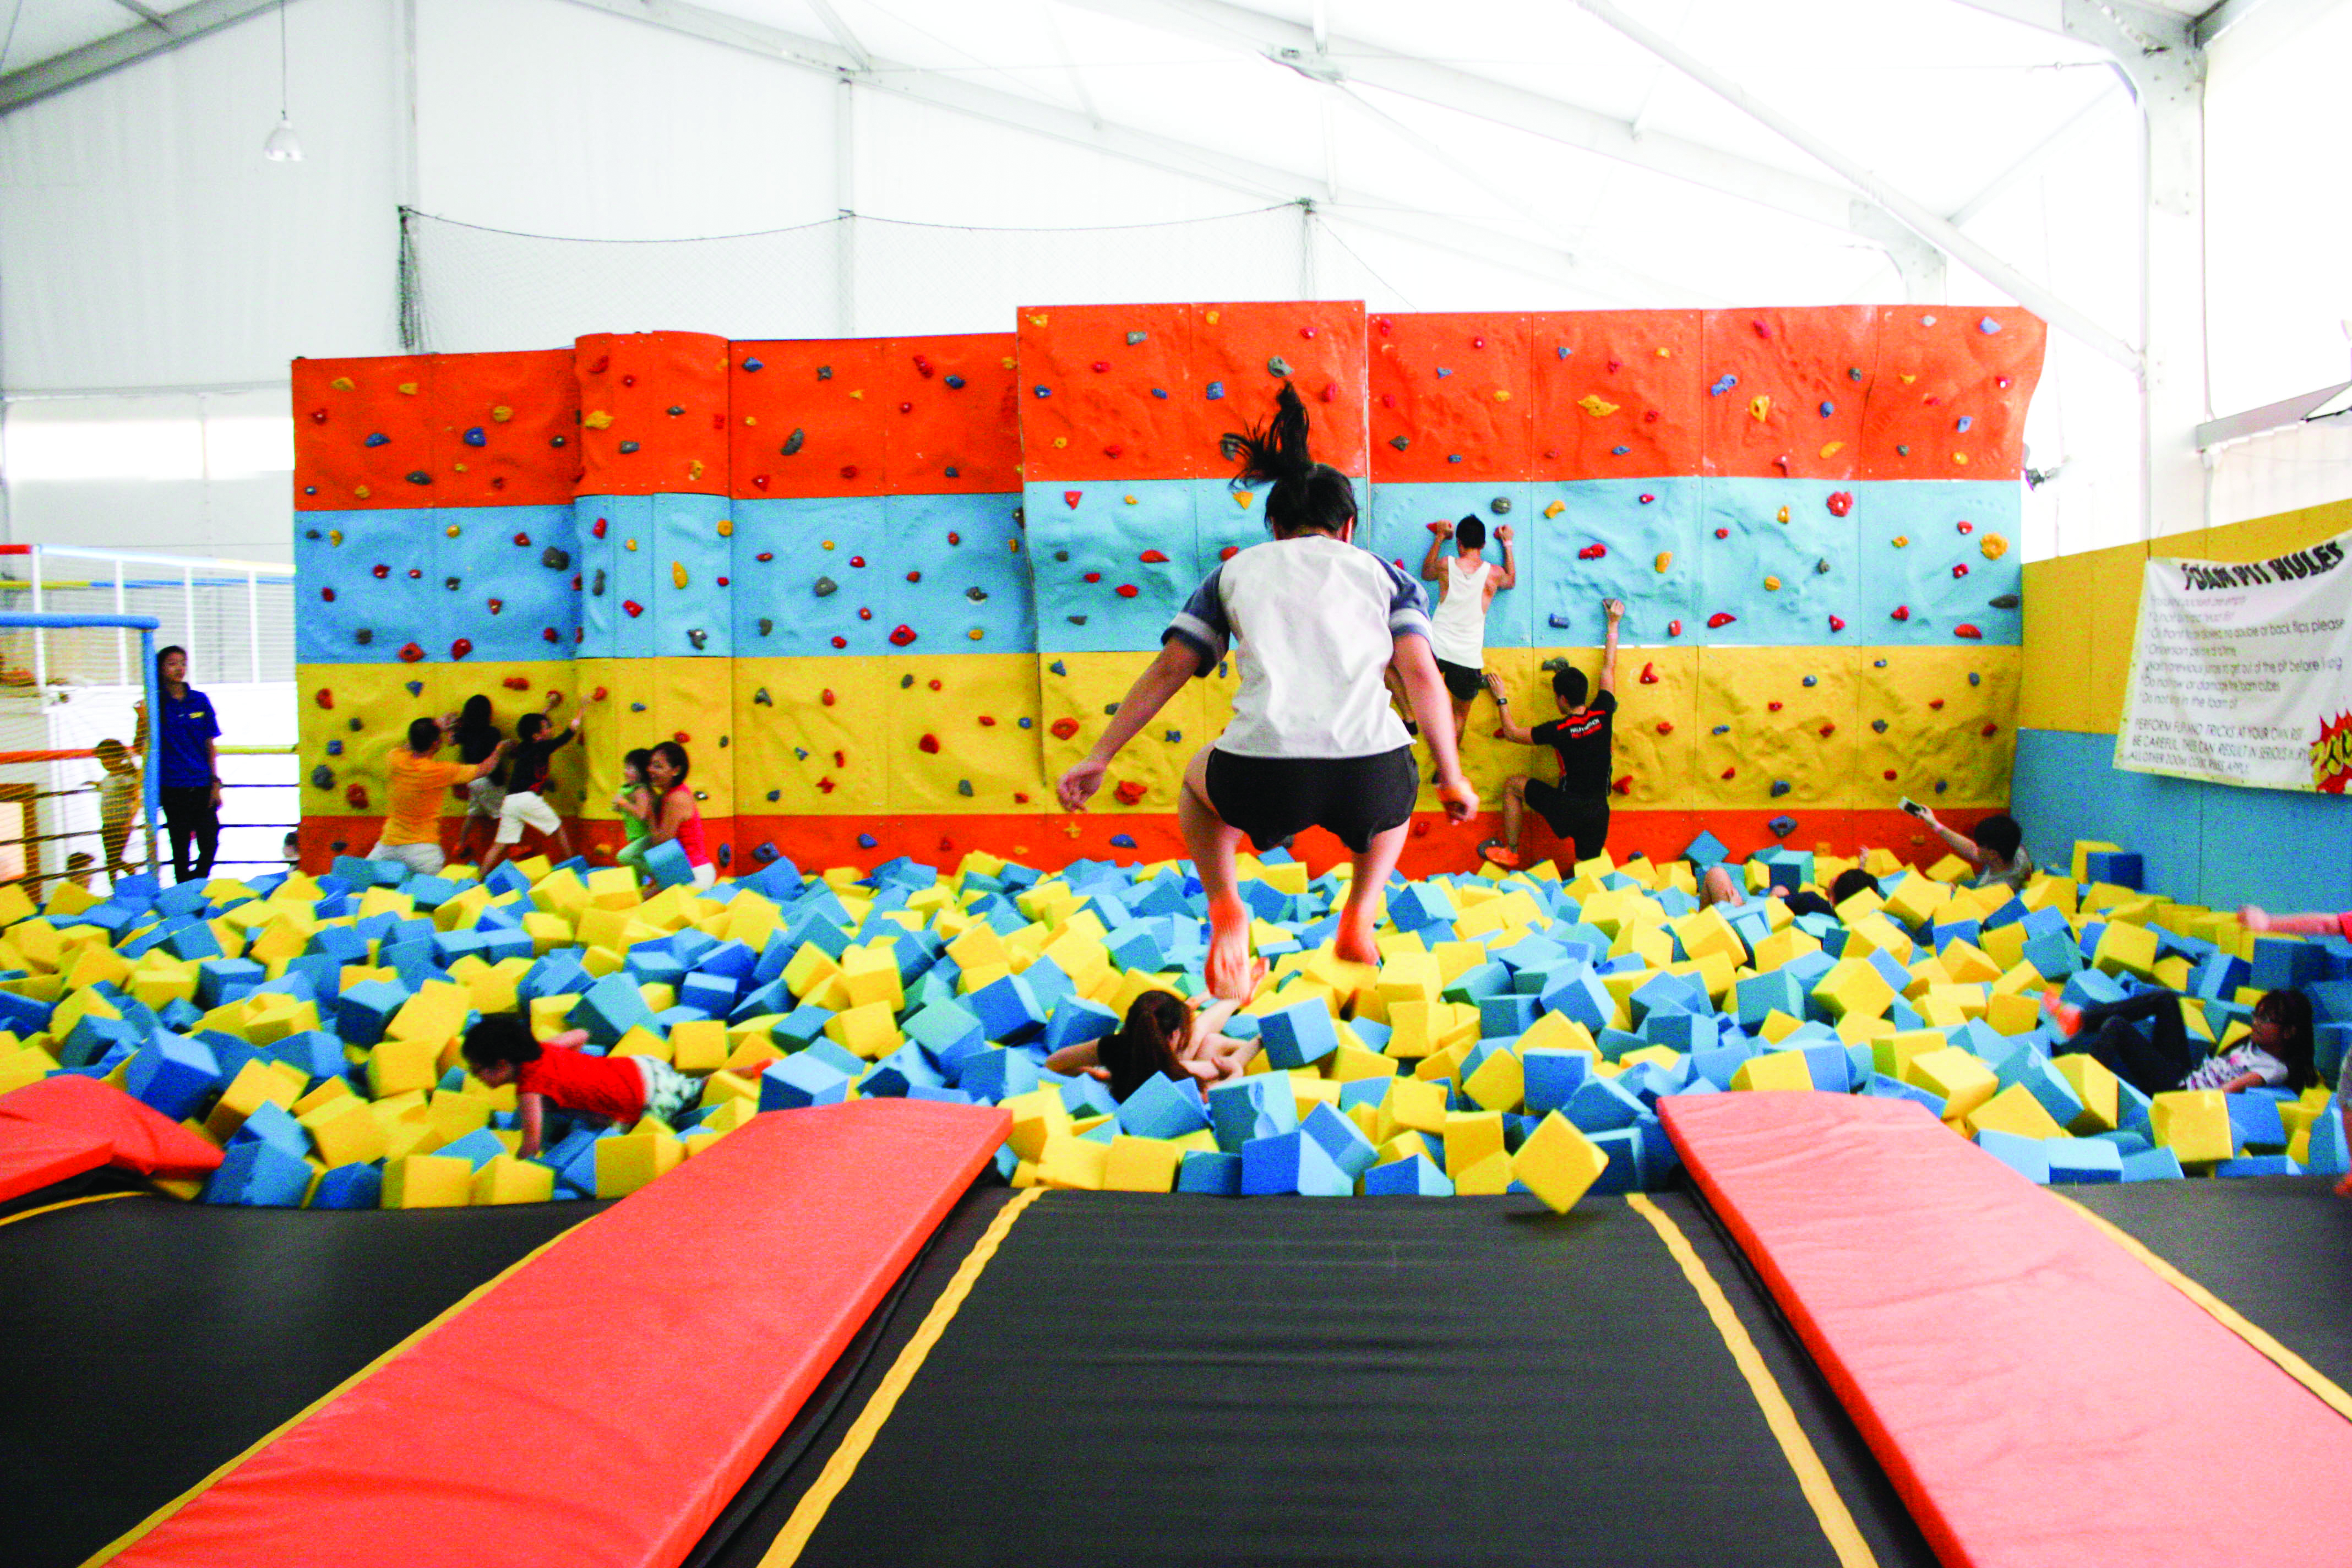 CANNONBALL: Bouncing off walls and trampolines is not only allowed, but also encouraged at the park's popular foam pit, where your fall would most definitely be cushioned.